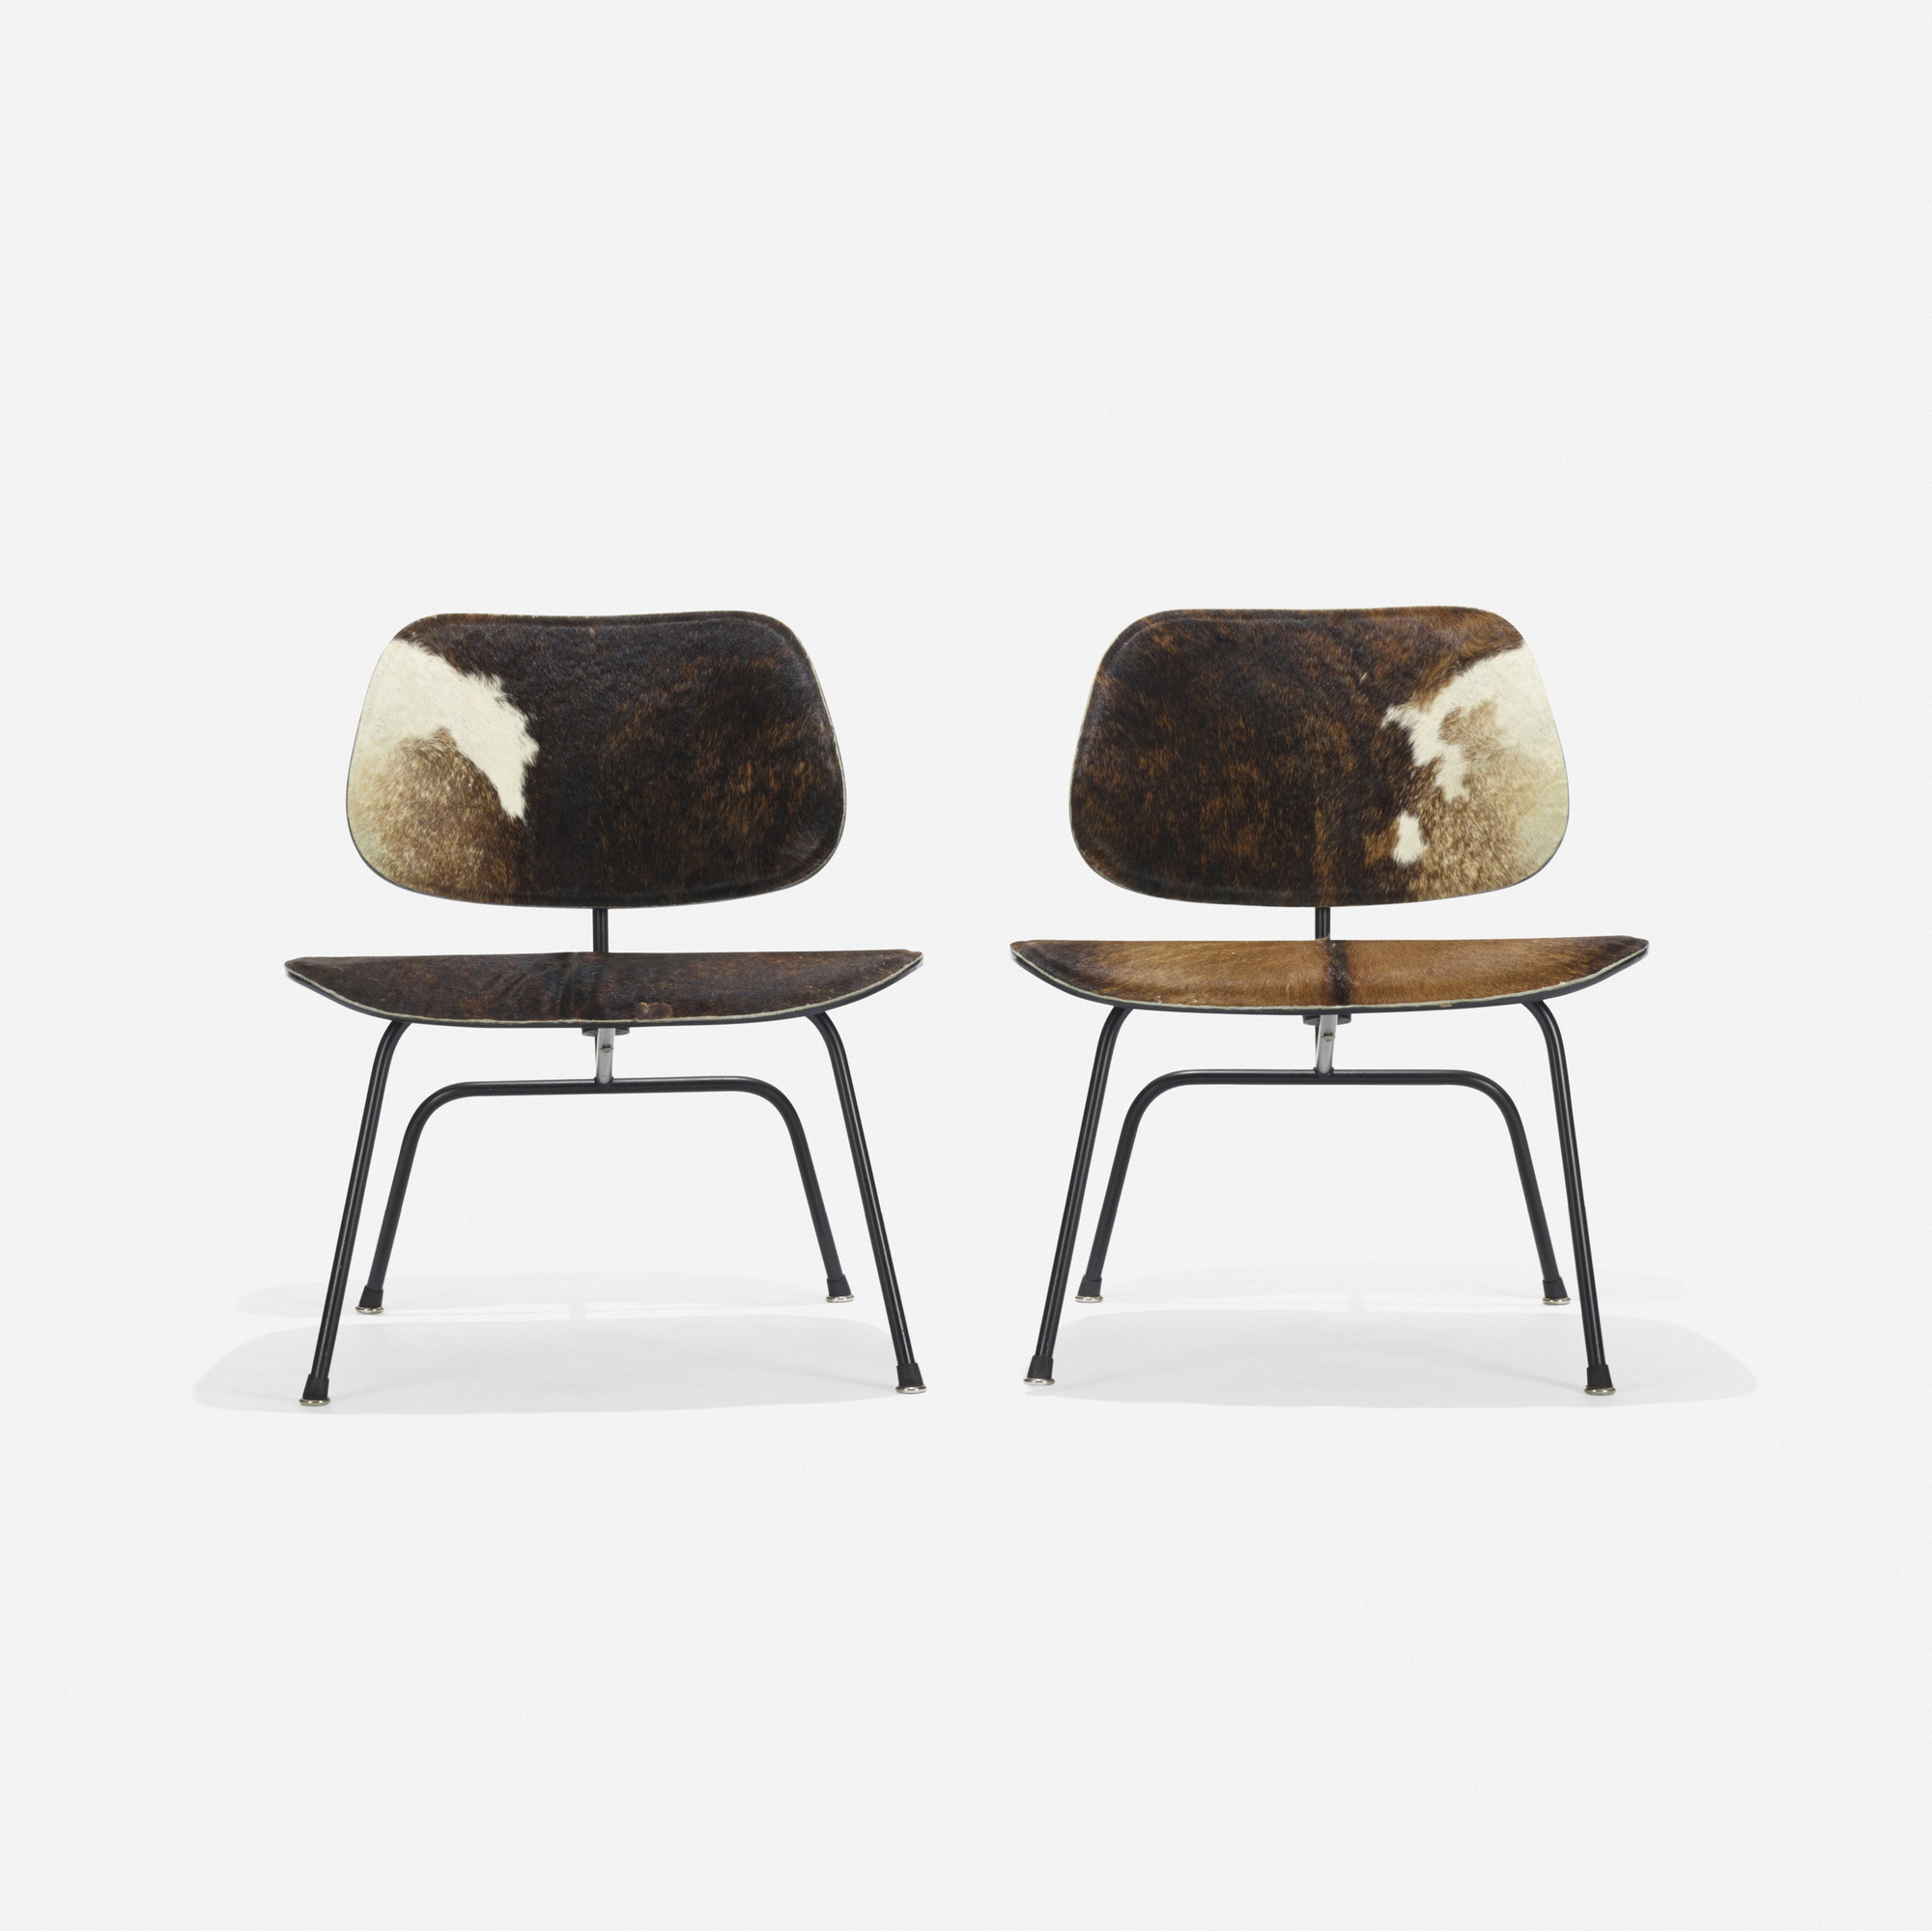 183: Charles and Ray Eames / LCMs, pair (2 of 4)